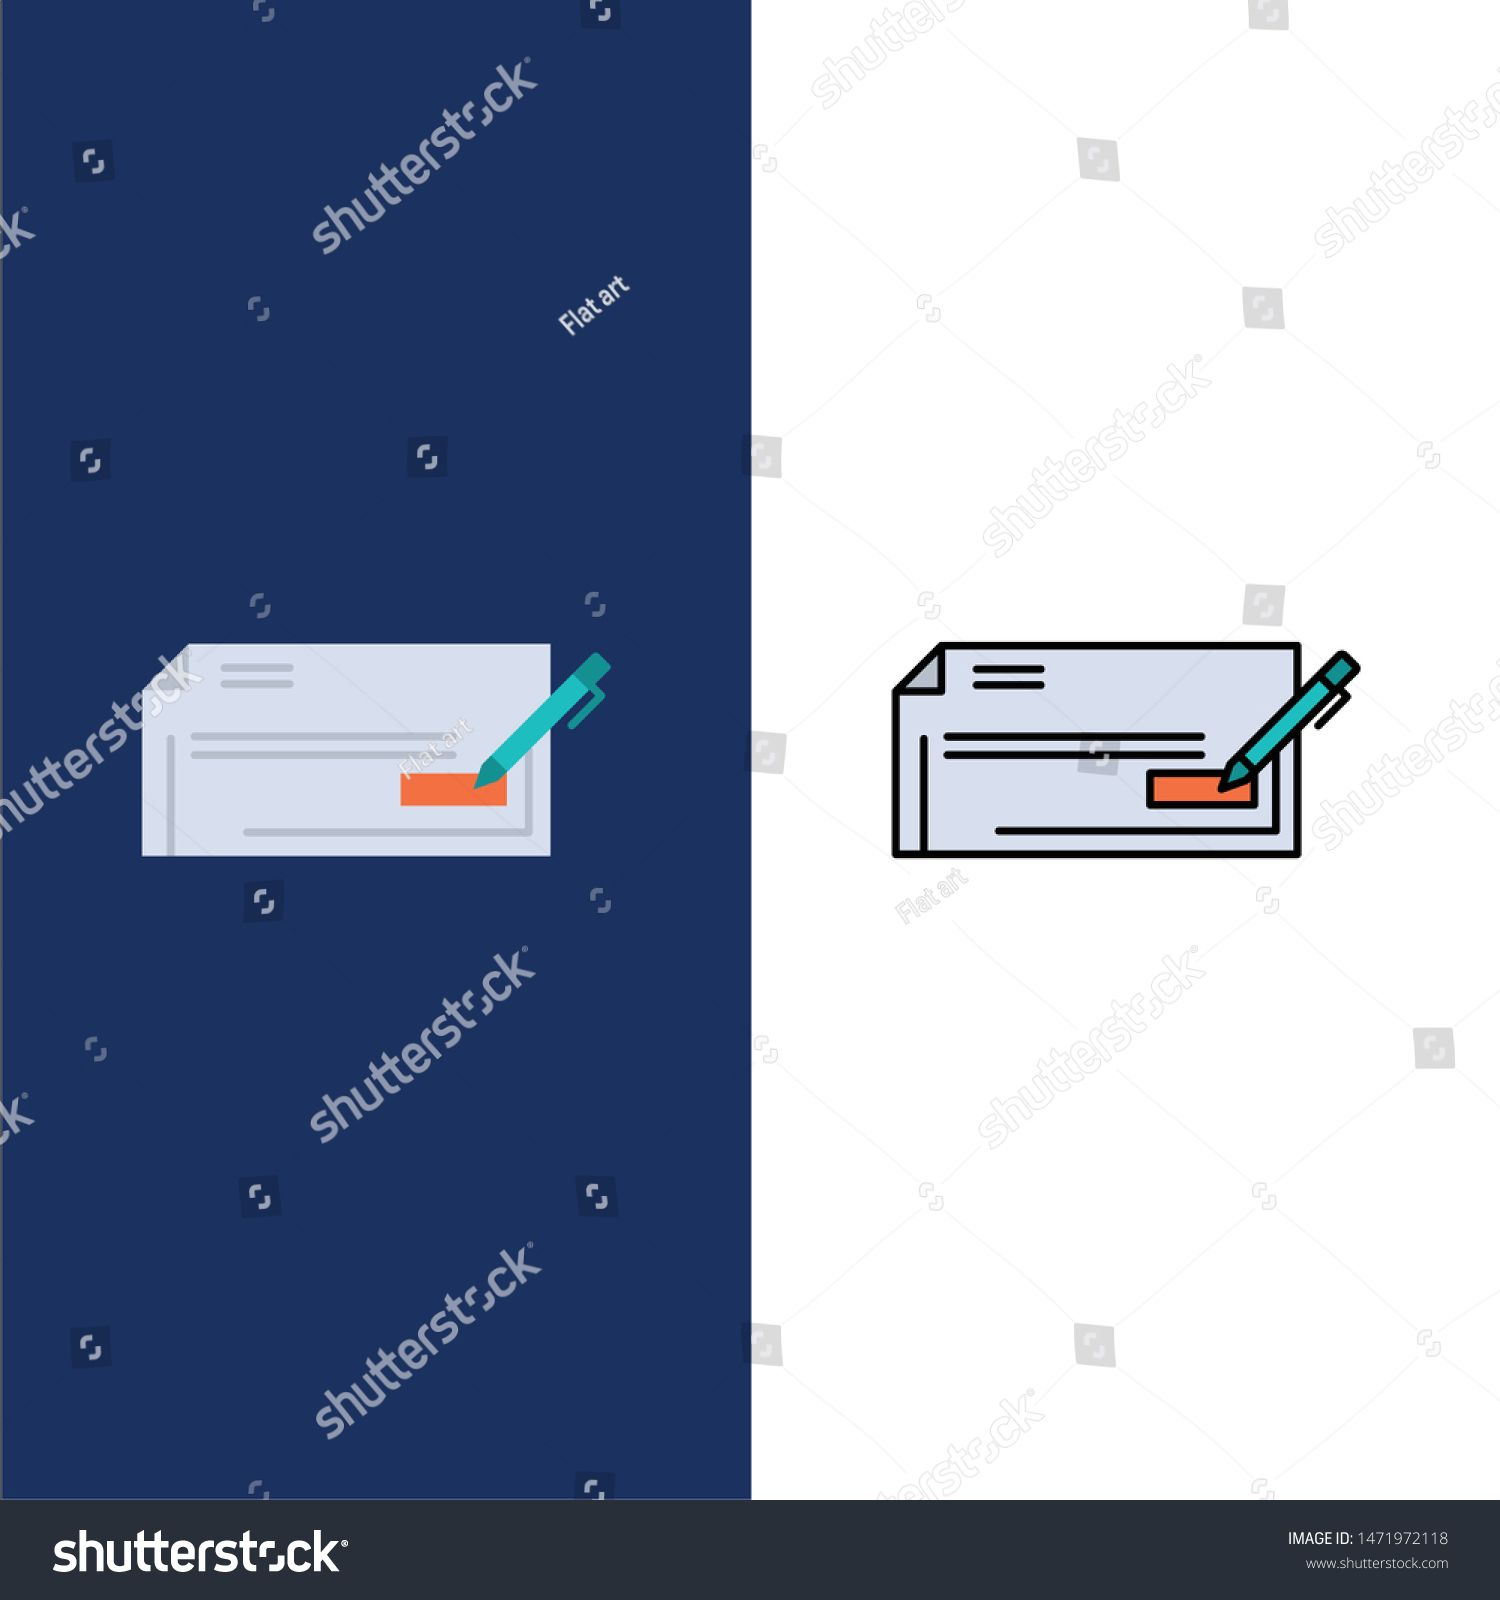 Check Bank Bank Check Business Finance Money Icons Flat And